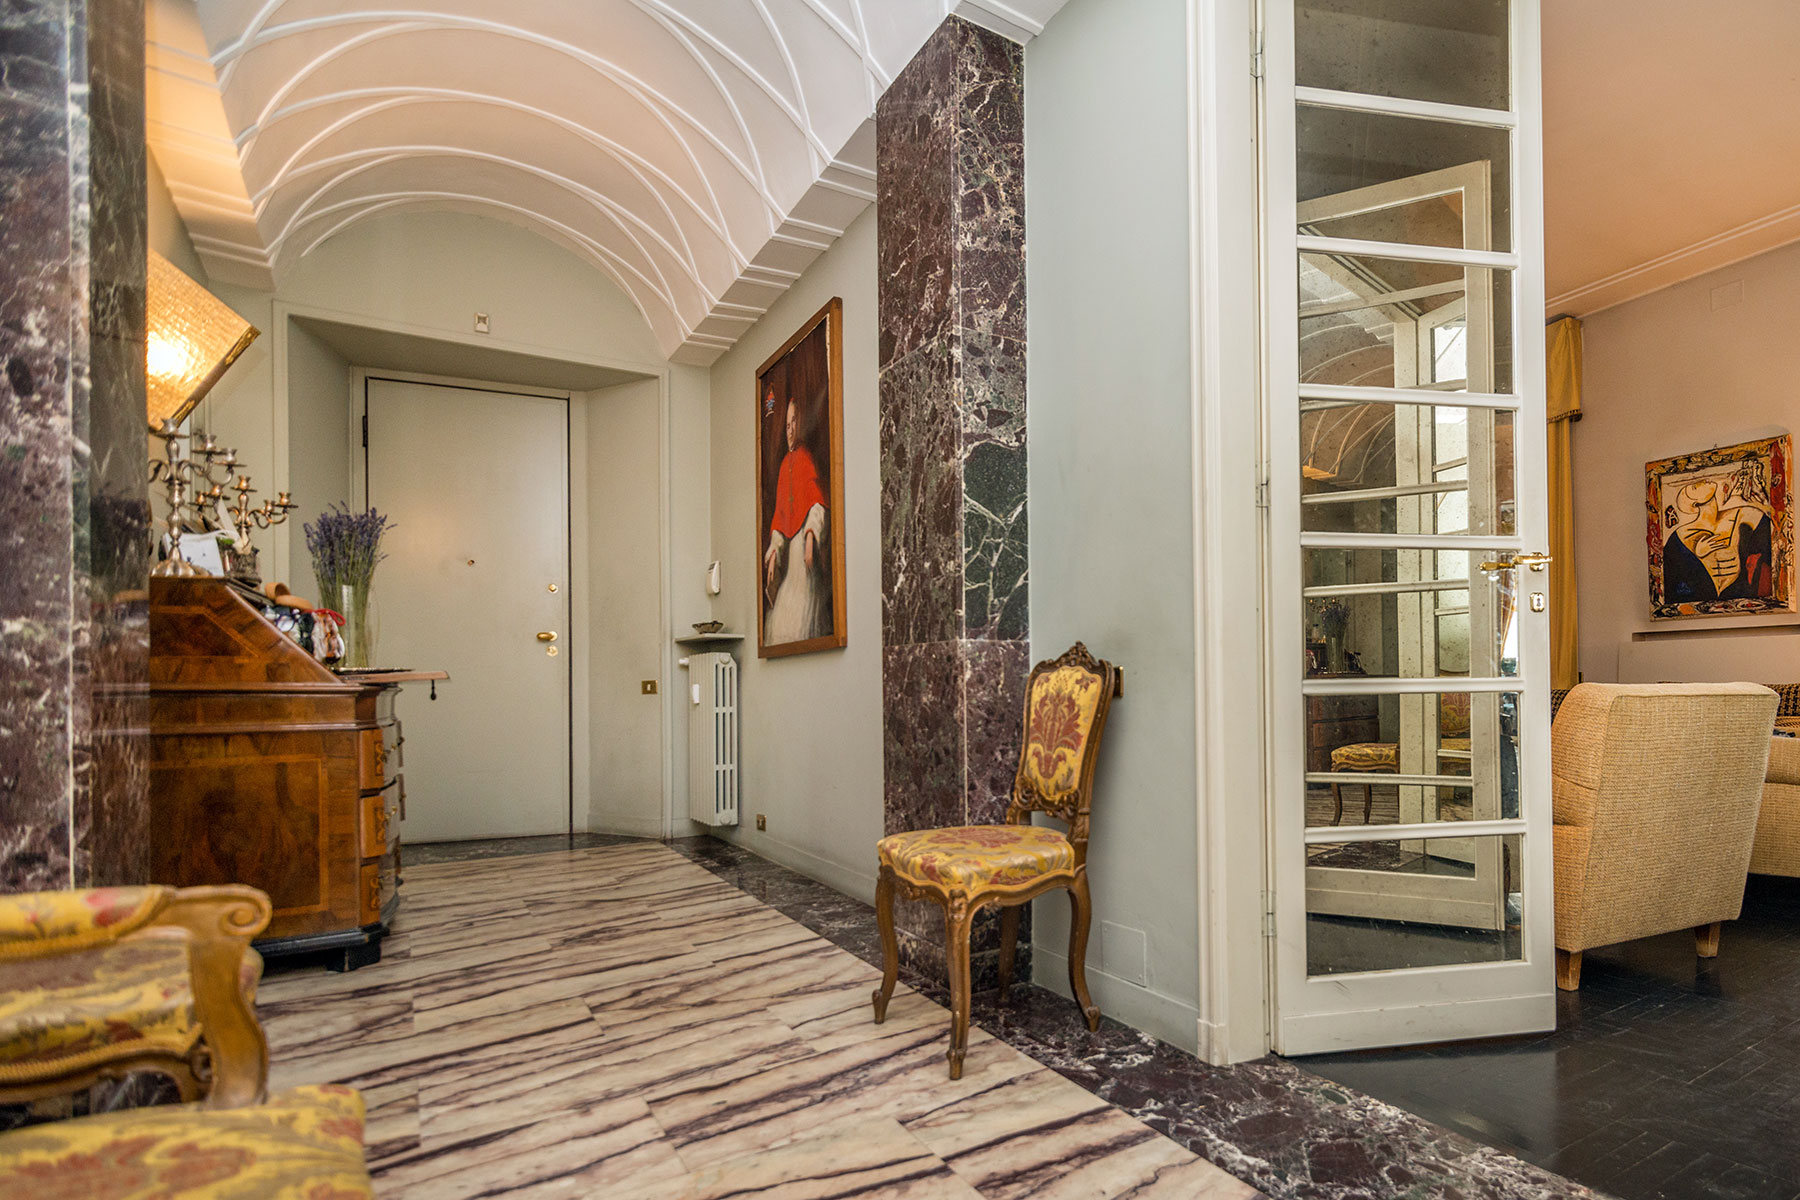 Additional photo for property listing at Elegant apartment in the historical center of Milan Piazza Sant'Erasmo Milano, Milan 20100 Italia